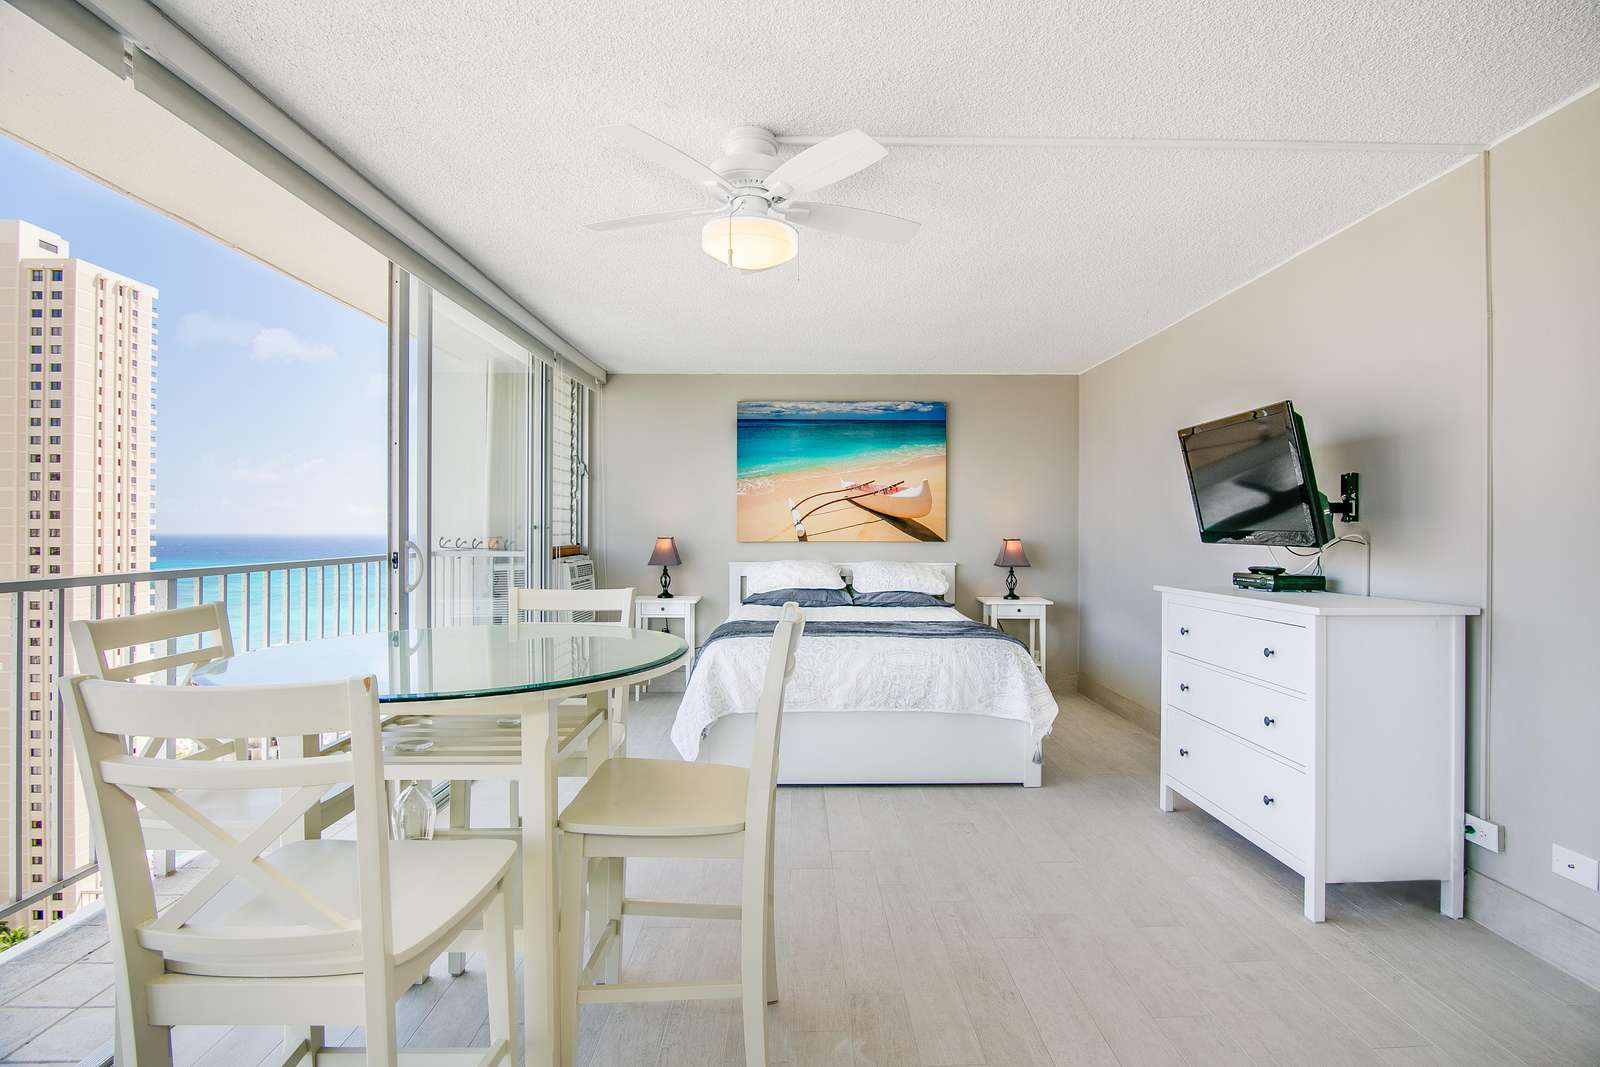 Your dream vacation suite awaits